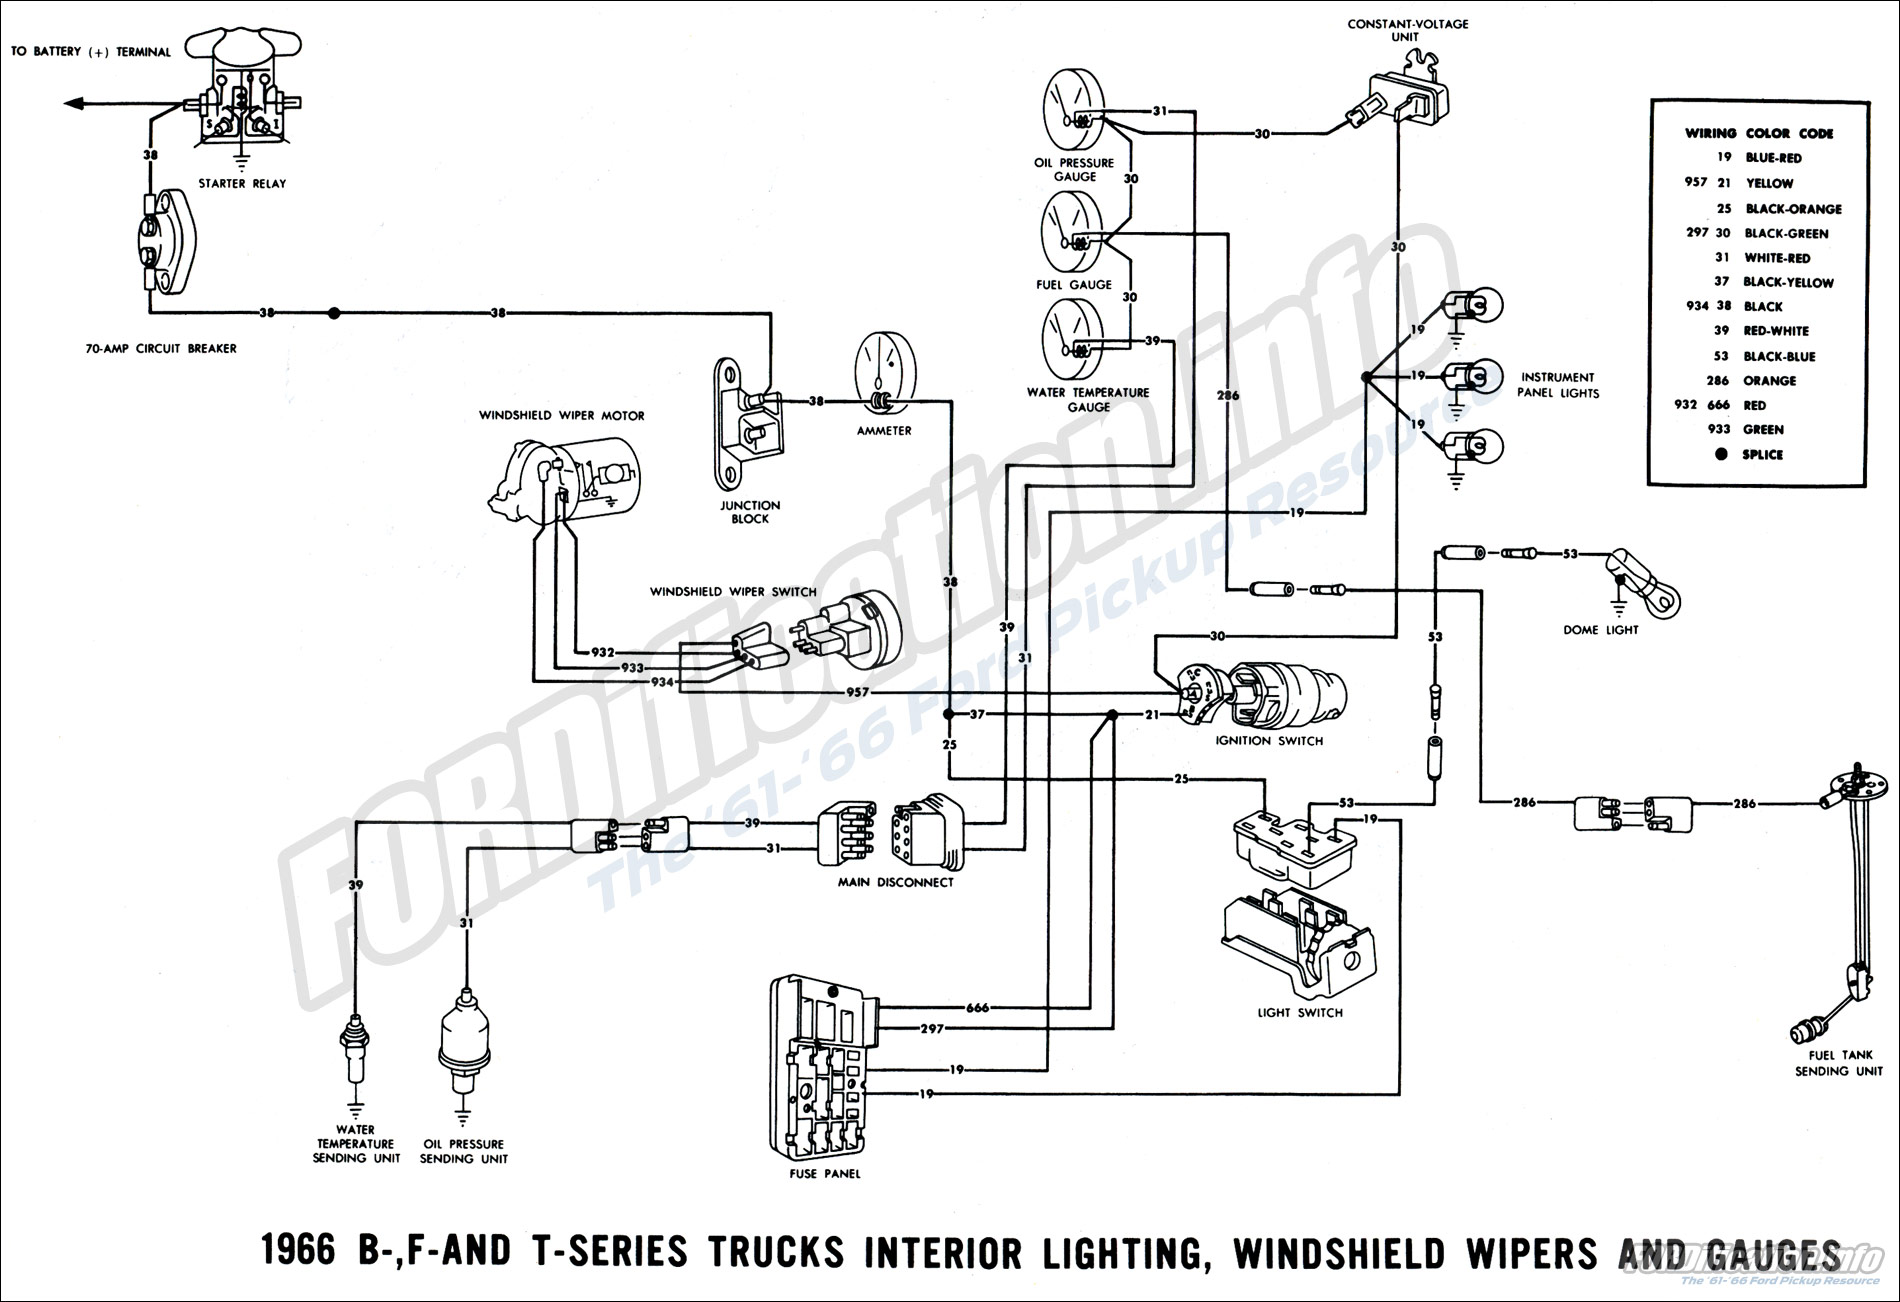 1972 ford f100 wiring harness 1966 f100 wiring harness 1966 ford truck wiring diagrams - fordification.info - the ...